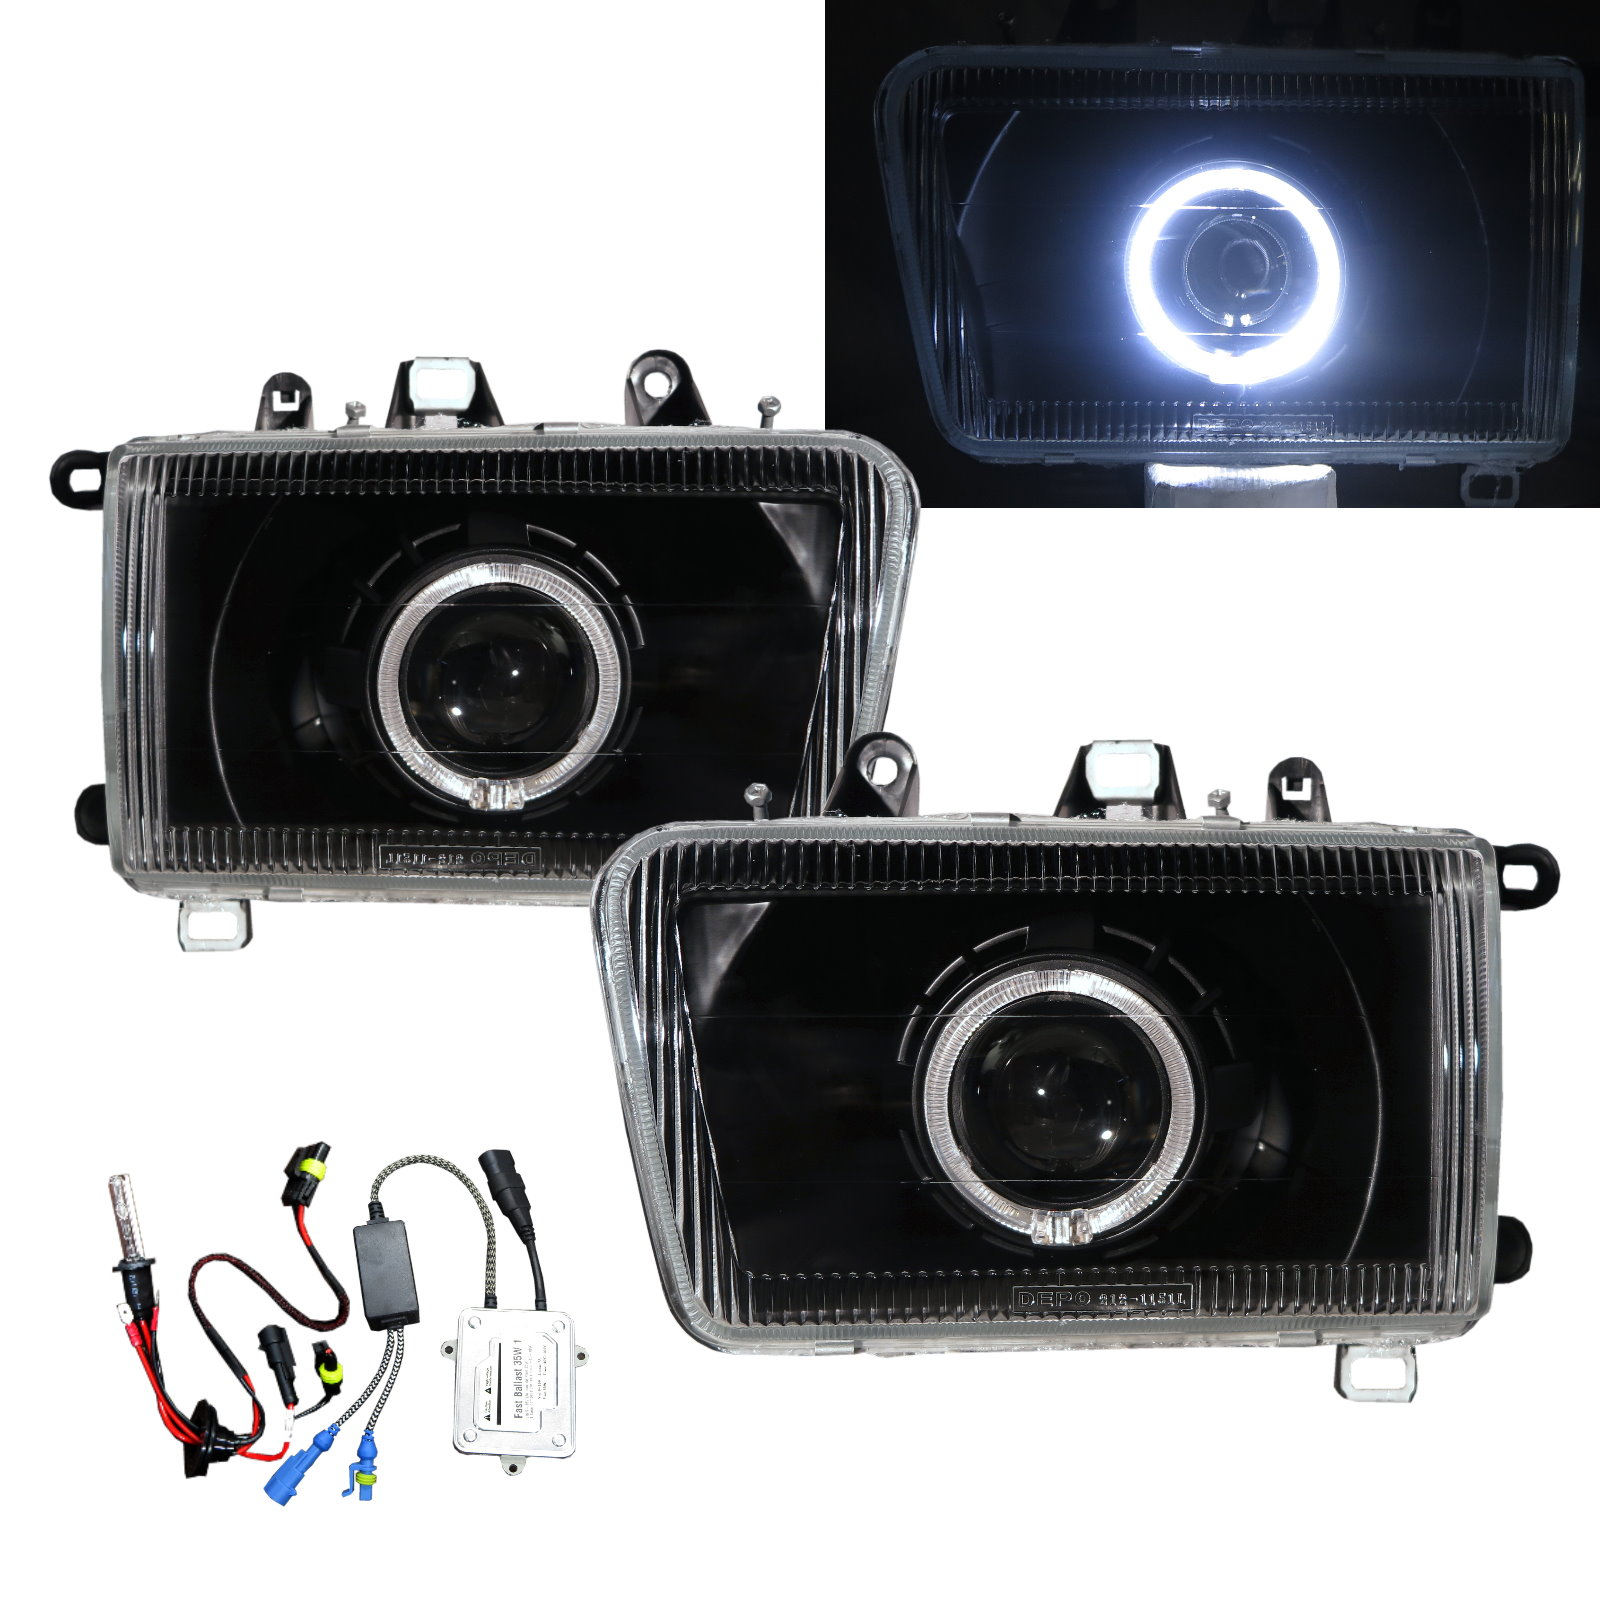 Safe 02-03 Wagon Guide LED Angel-Eye Projector Headlight BK for Great Wall LHD